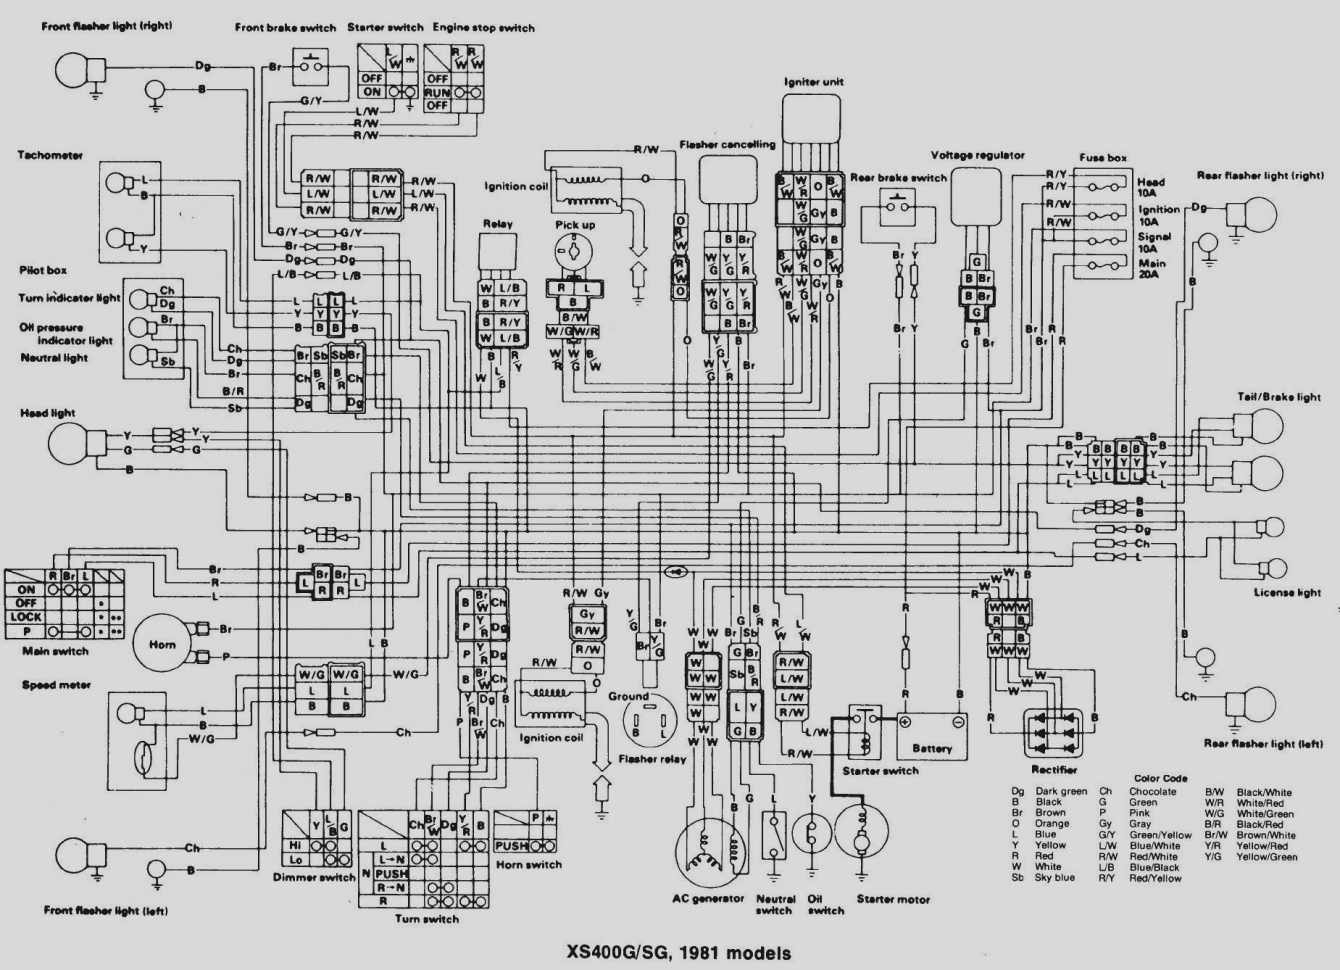 Yamaha Tt500 Wiring Diagram Imageresizertool $ Www